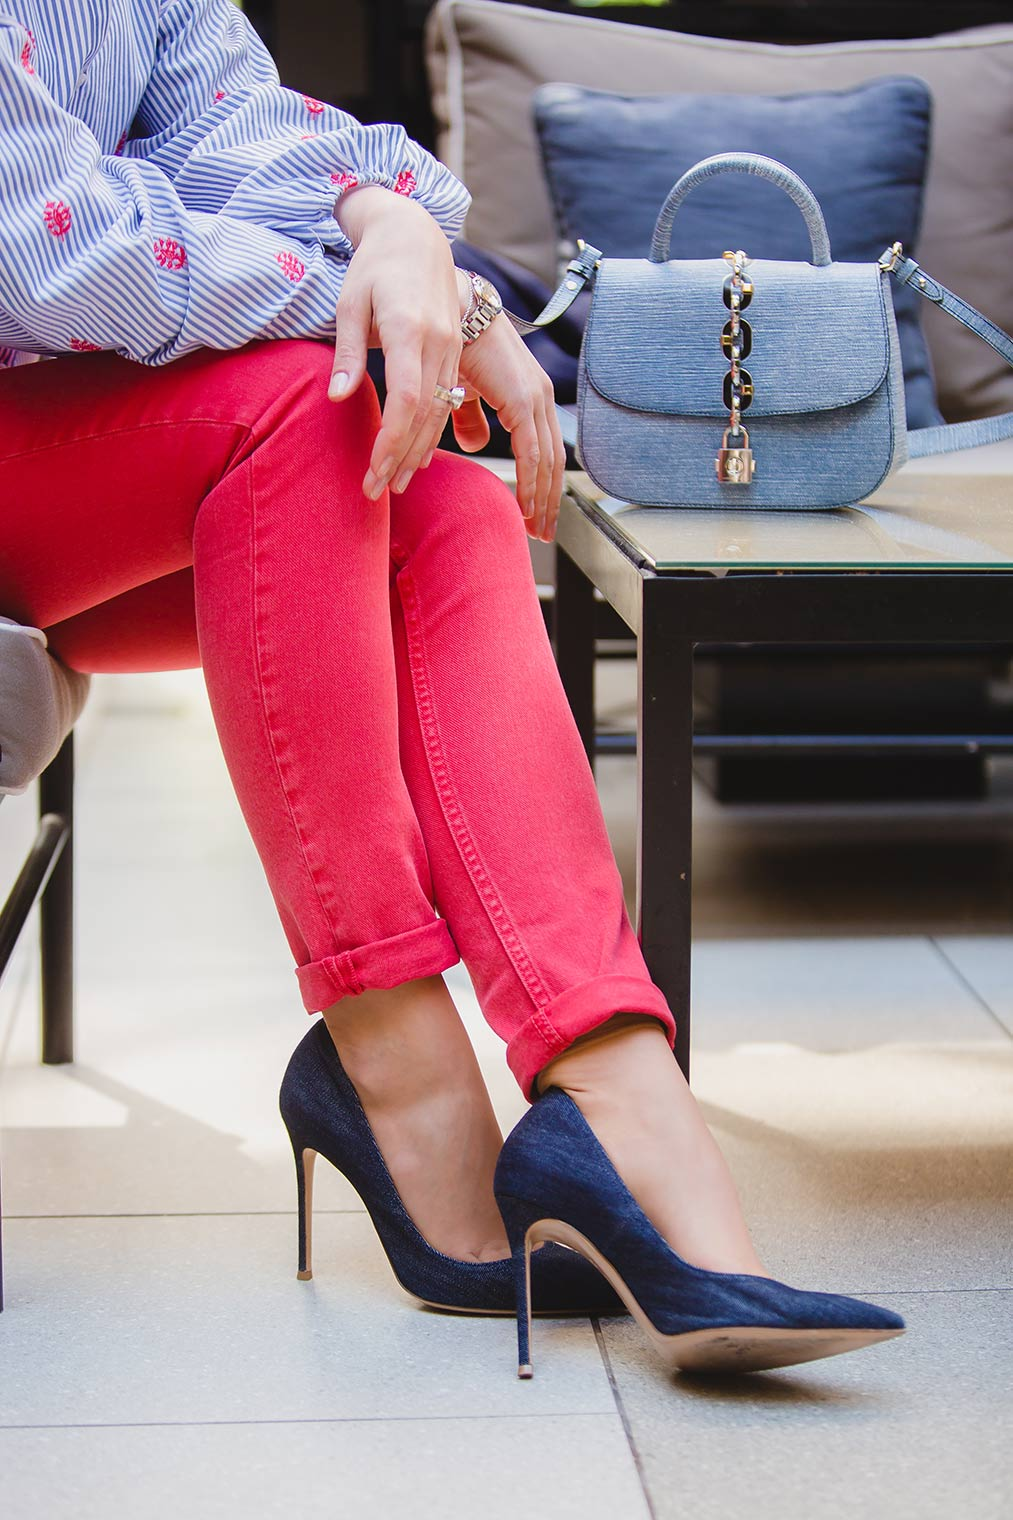 Gianvito Rossi pumps, red jeans and Louis Vuitton bag